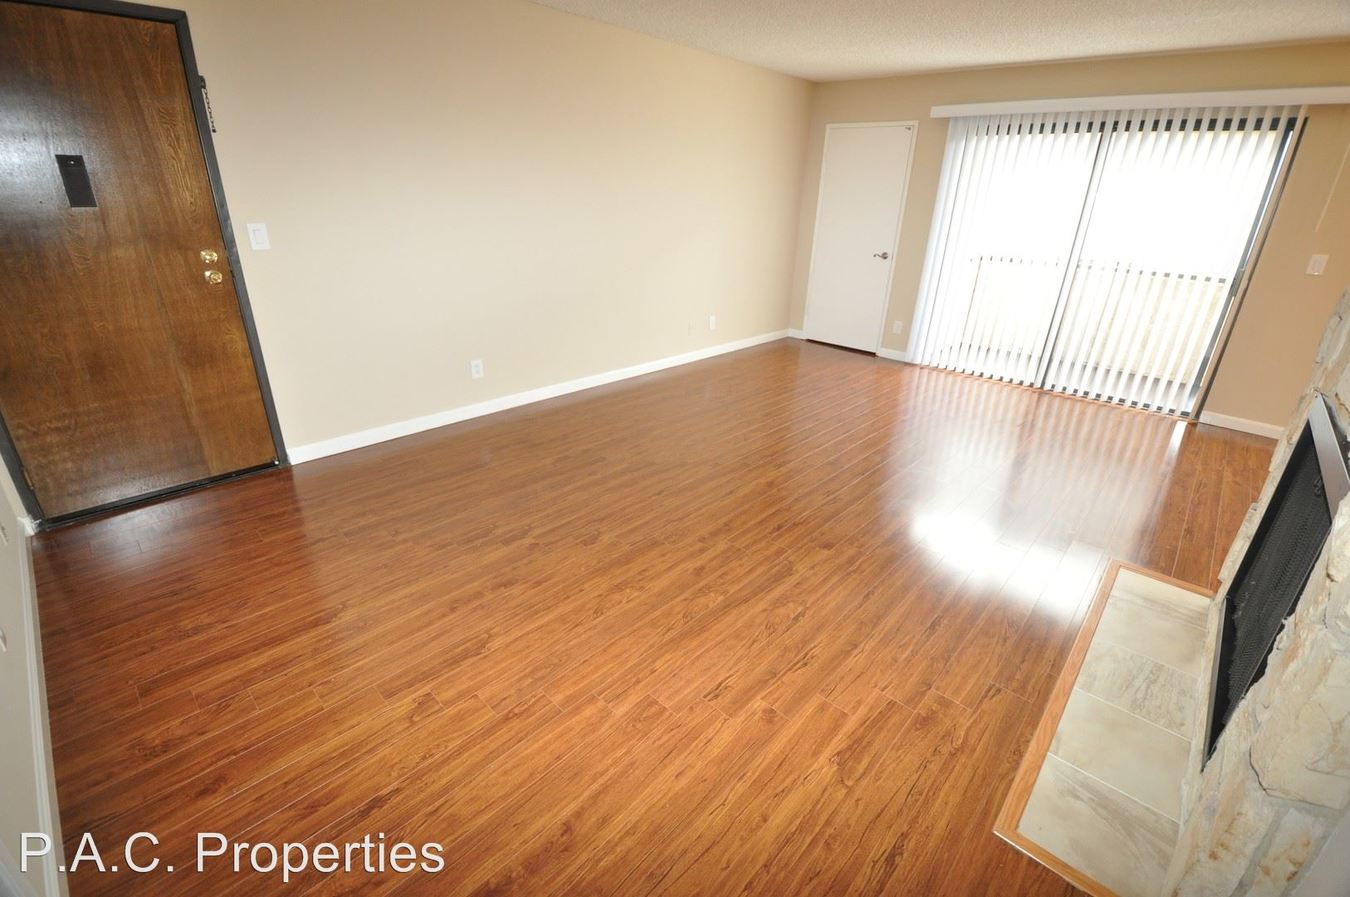 2 Bedrooms 2 Bathrooms Apartment for rent at 14710 Burbank Blvd in Sherman Oaks, CA